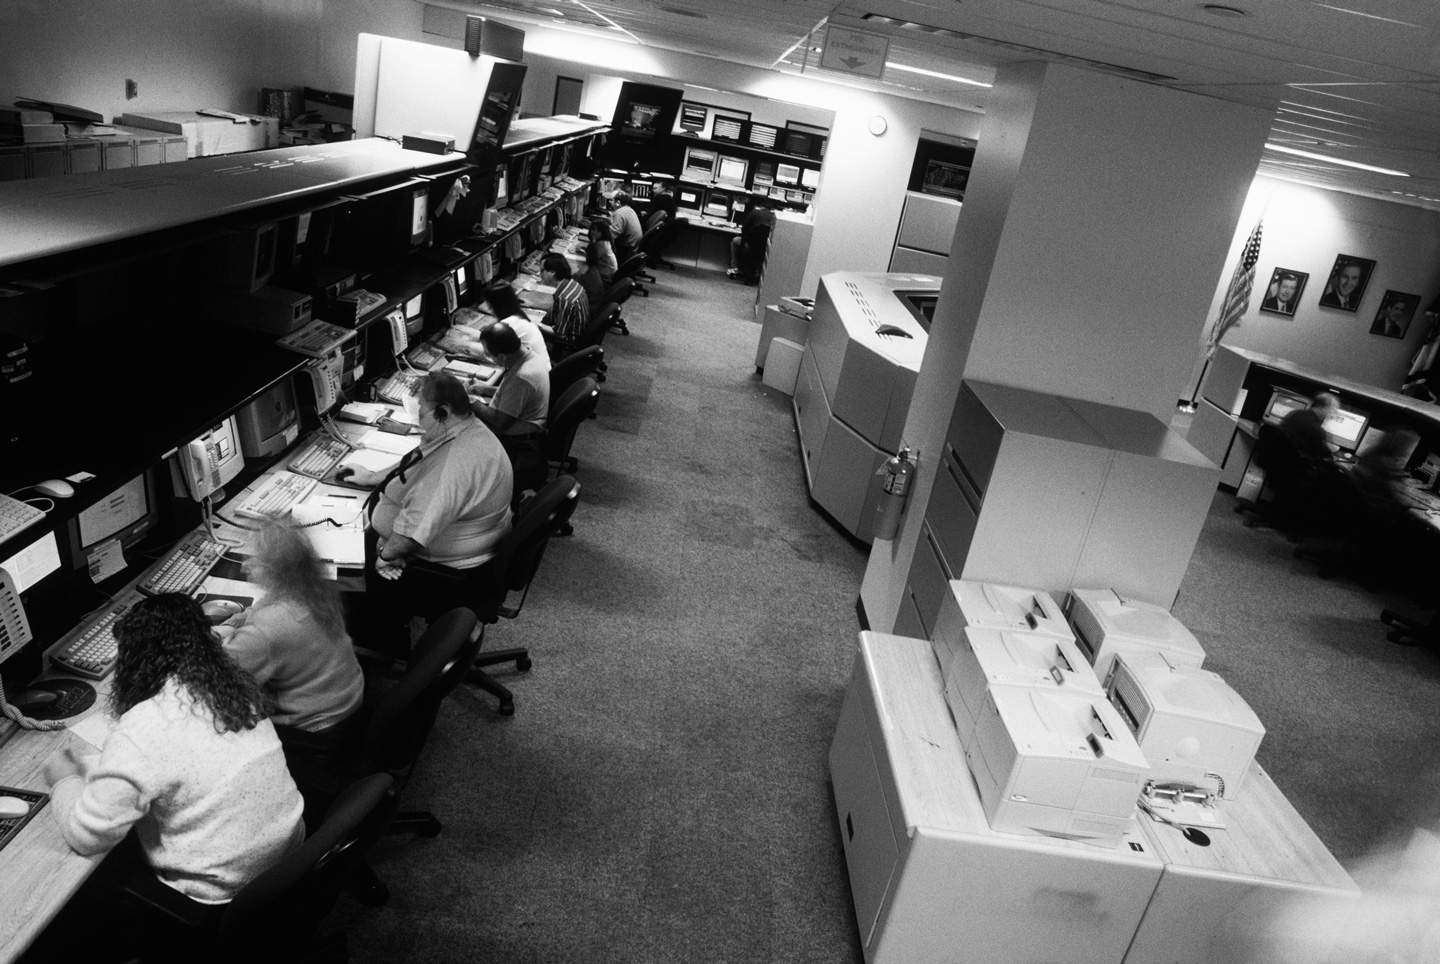 Workers, many from the nearby town of Clarksburg, analyze data to help track criminals. At the FBI's Criminal Justice Information Services Division headquarters, tucked away in the West Virginia hills near Clarksburg, some 3,000 employees quietly fight crime with a sophisticated computer network and access to the largest repository of fingerprints in the world.